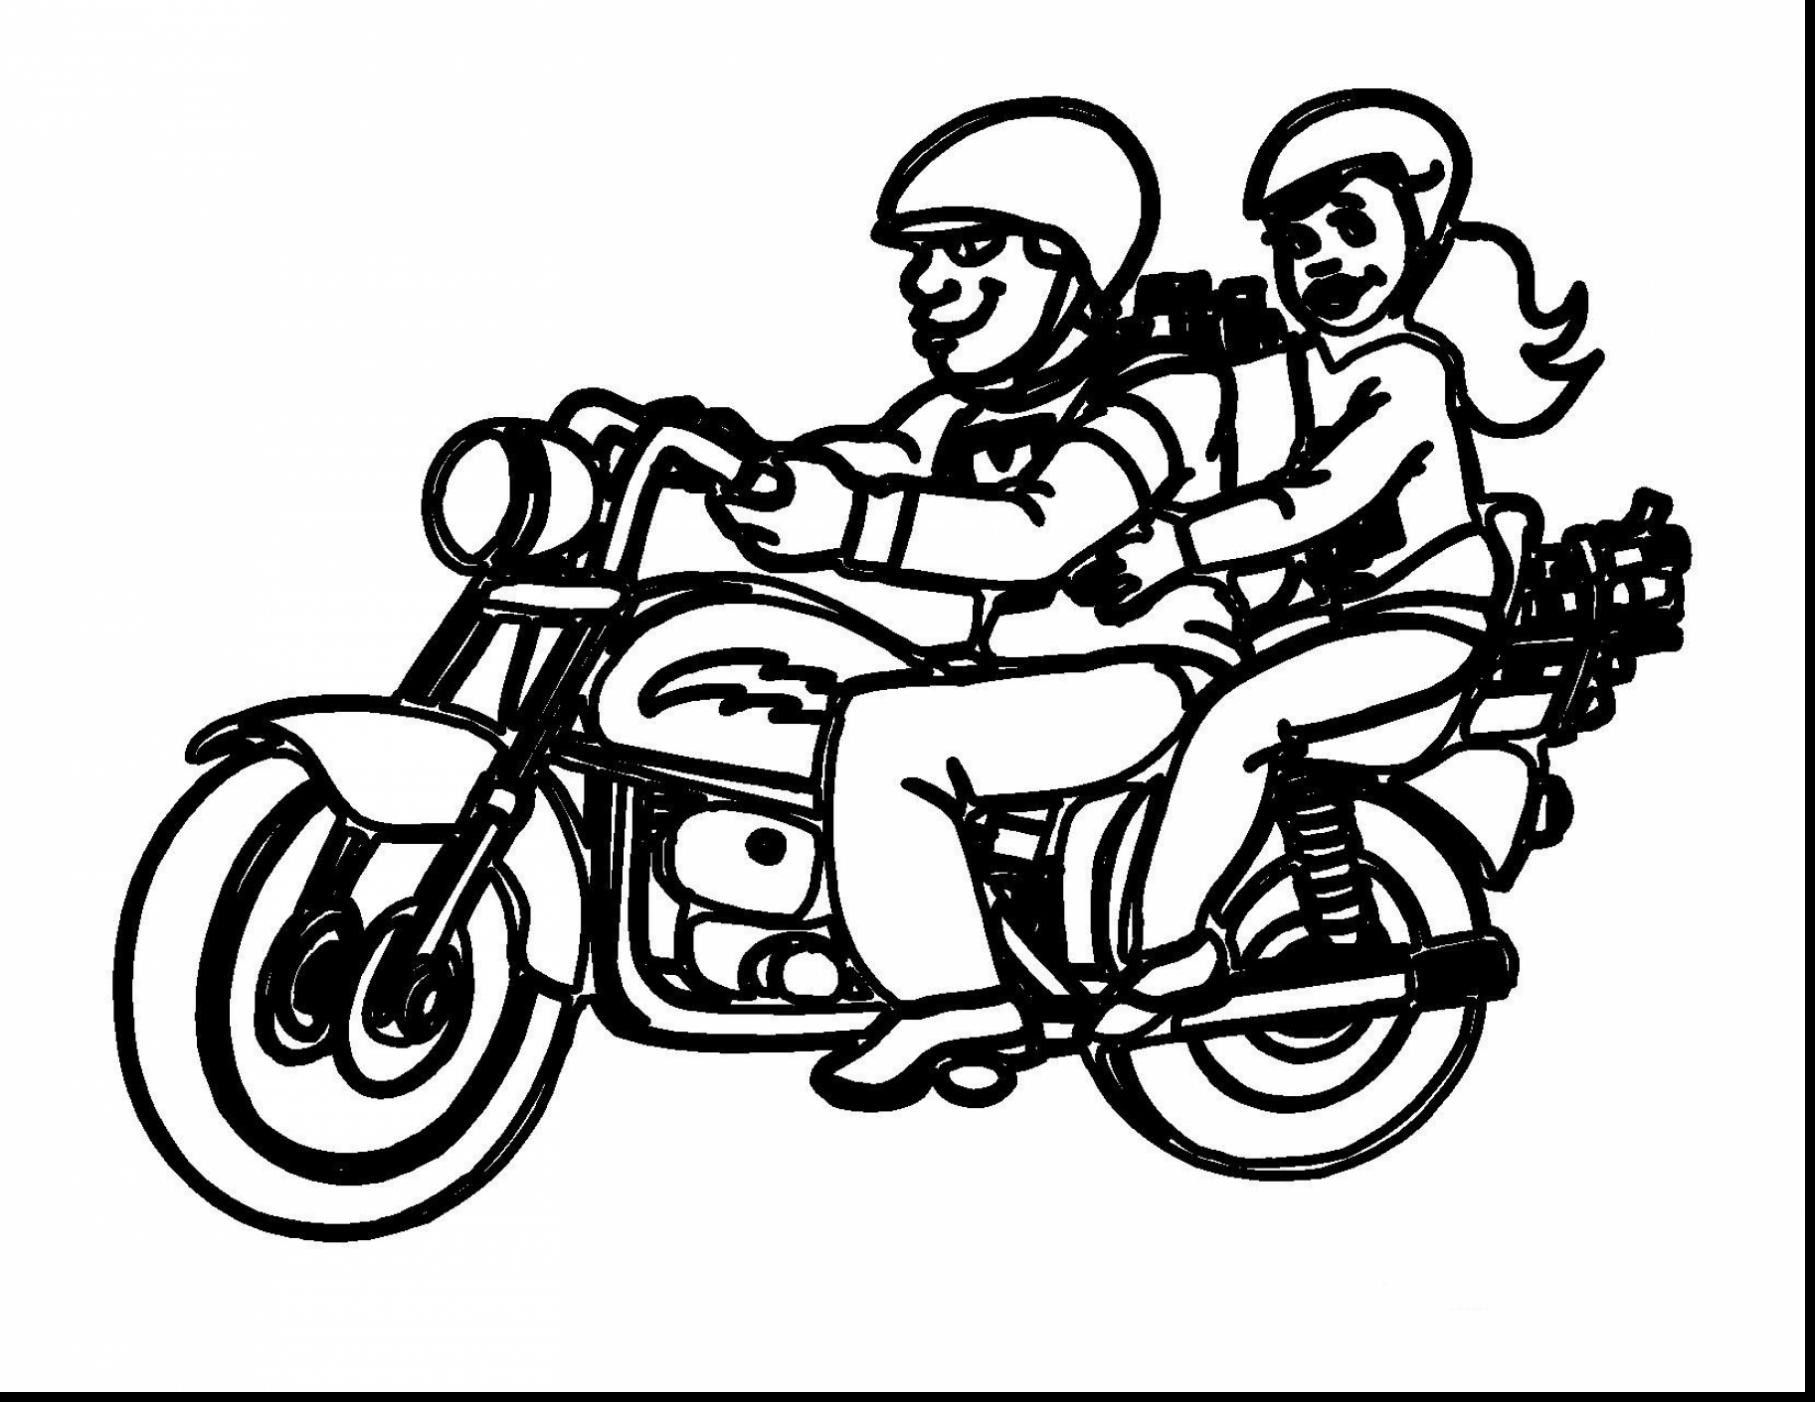 Motorcycle Coloring Pages Free Printable Motorcycle Coloring Pages For Kids With Bitslice Albanysinsanity Com In 2020 Coloring Pages Cartoon Coloring Pages Cat Coloring Page